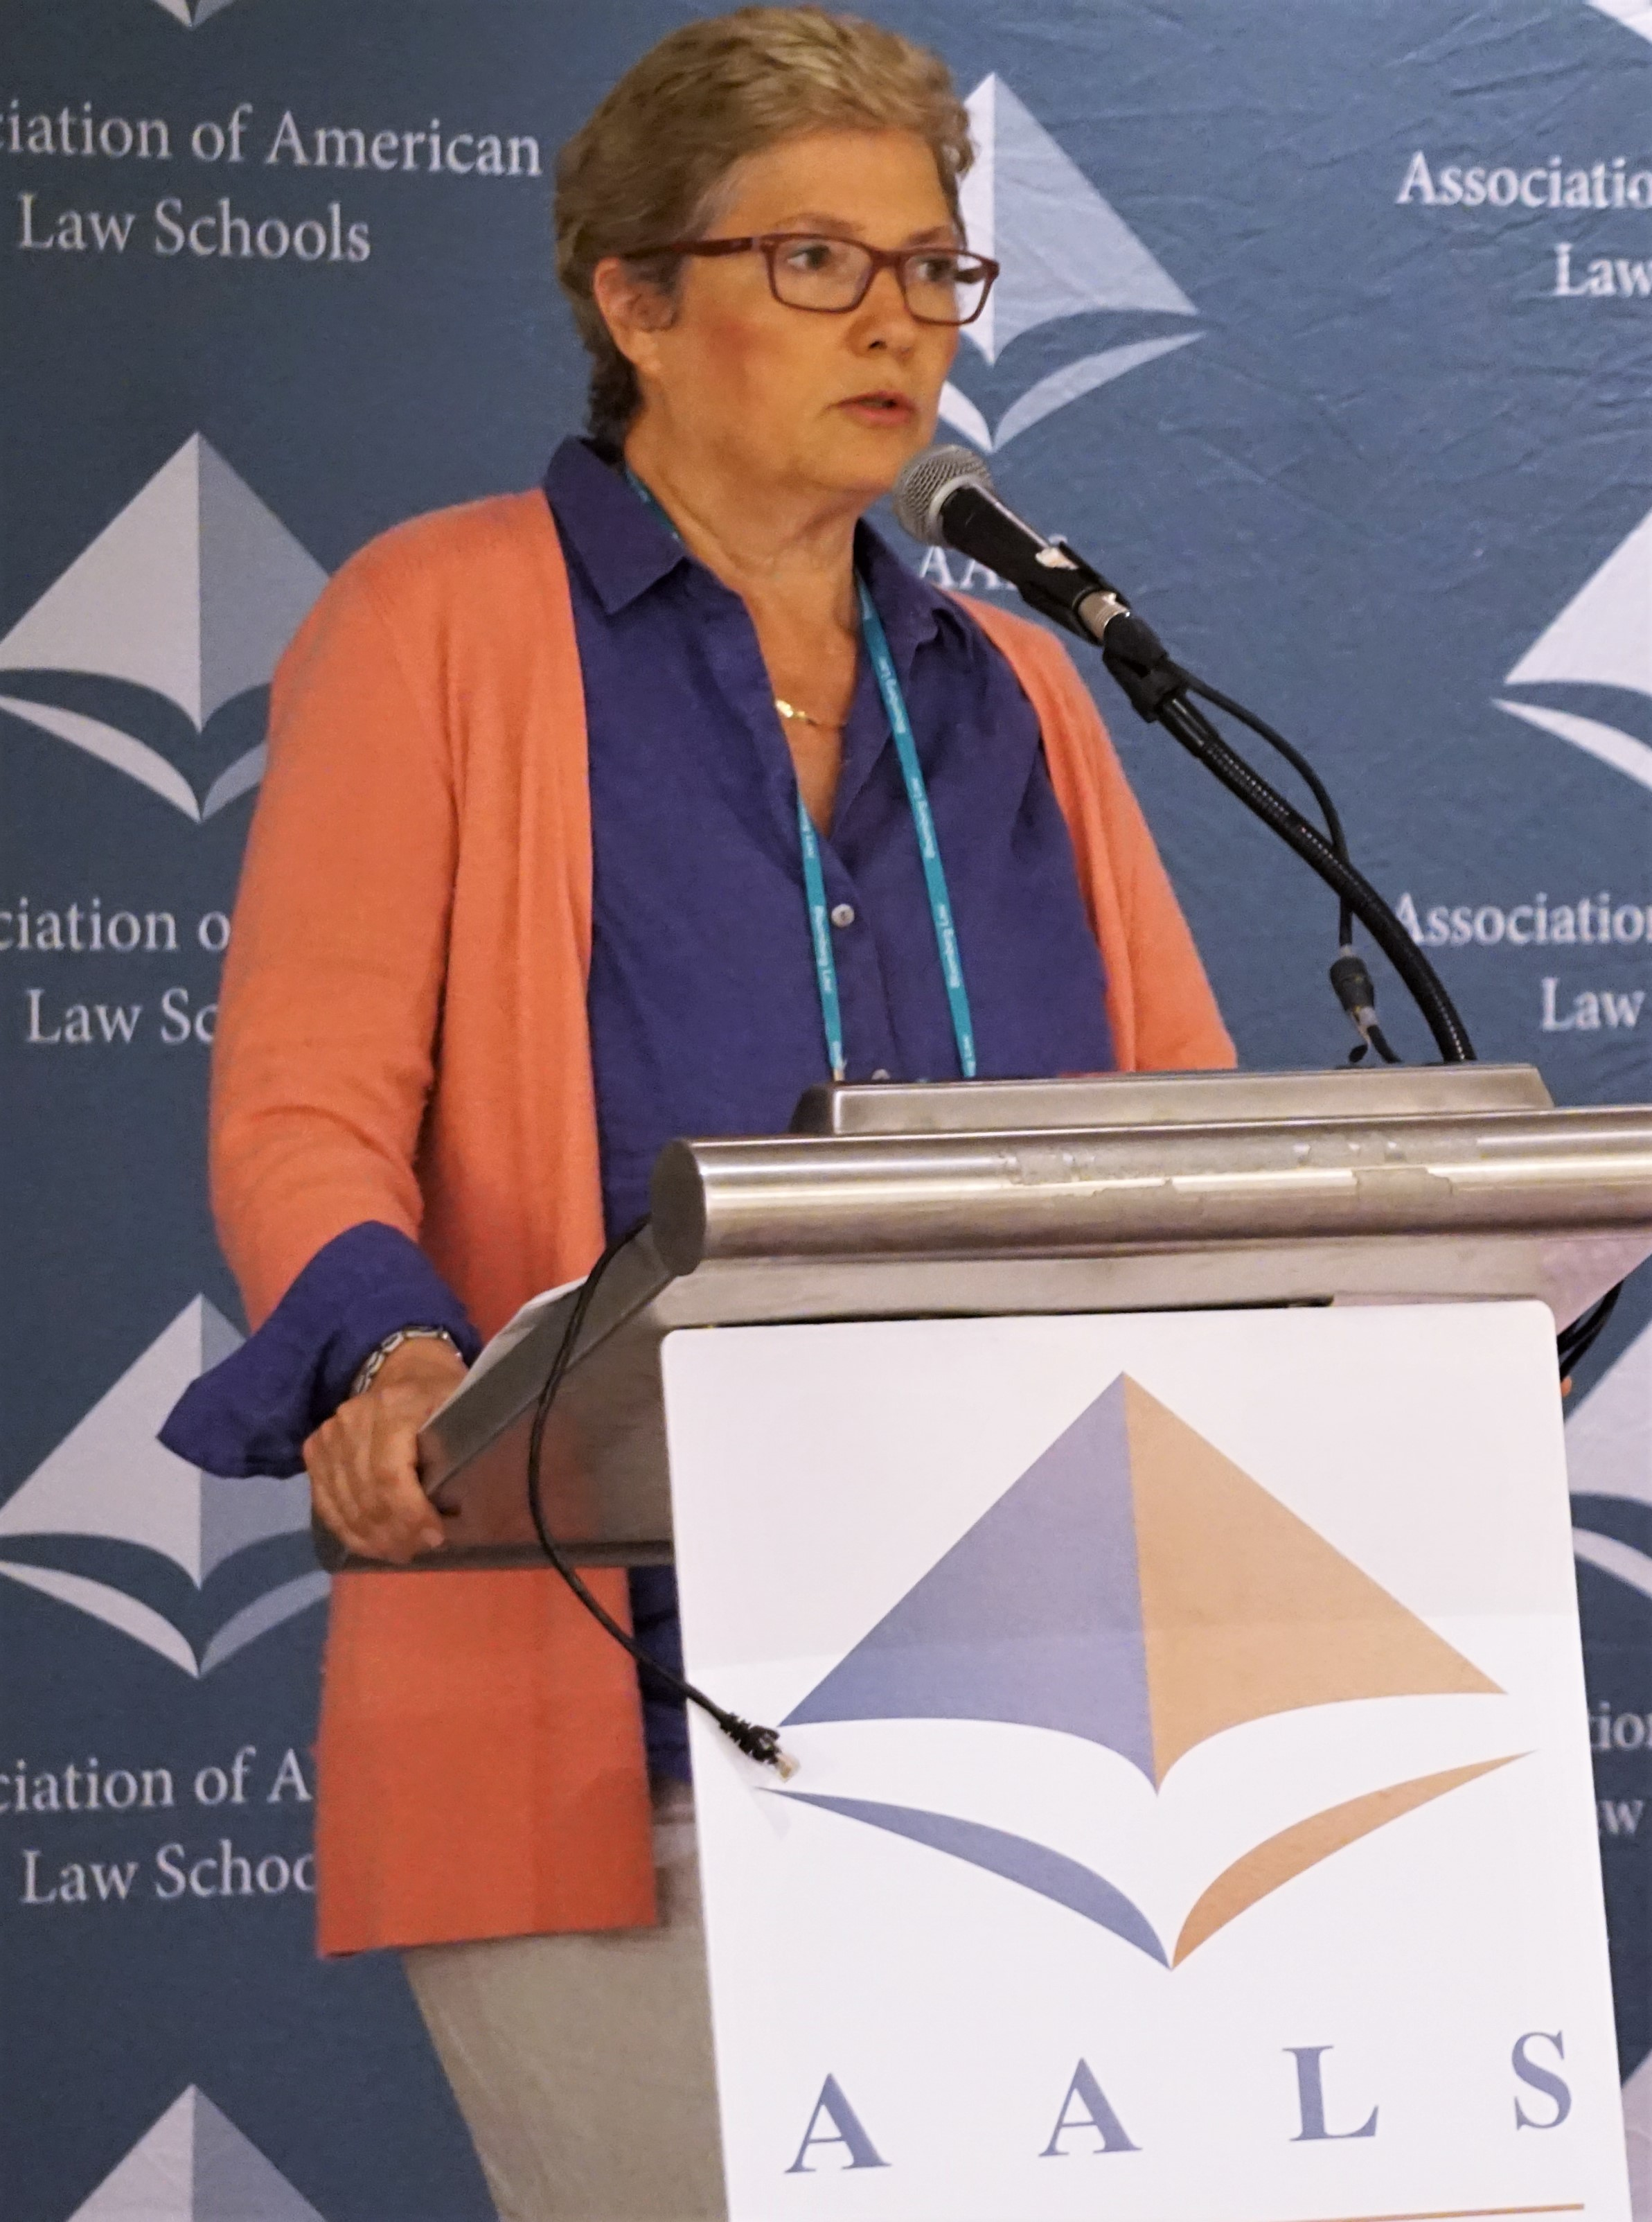 Plenary Session - Why Scholarship Still Matters. Robin L. West, Georgetown University Law Center